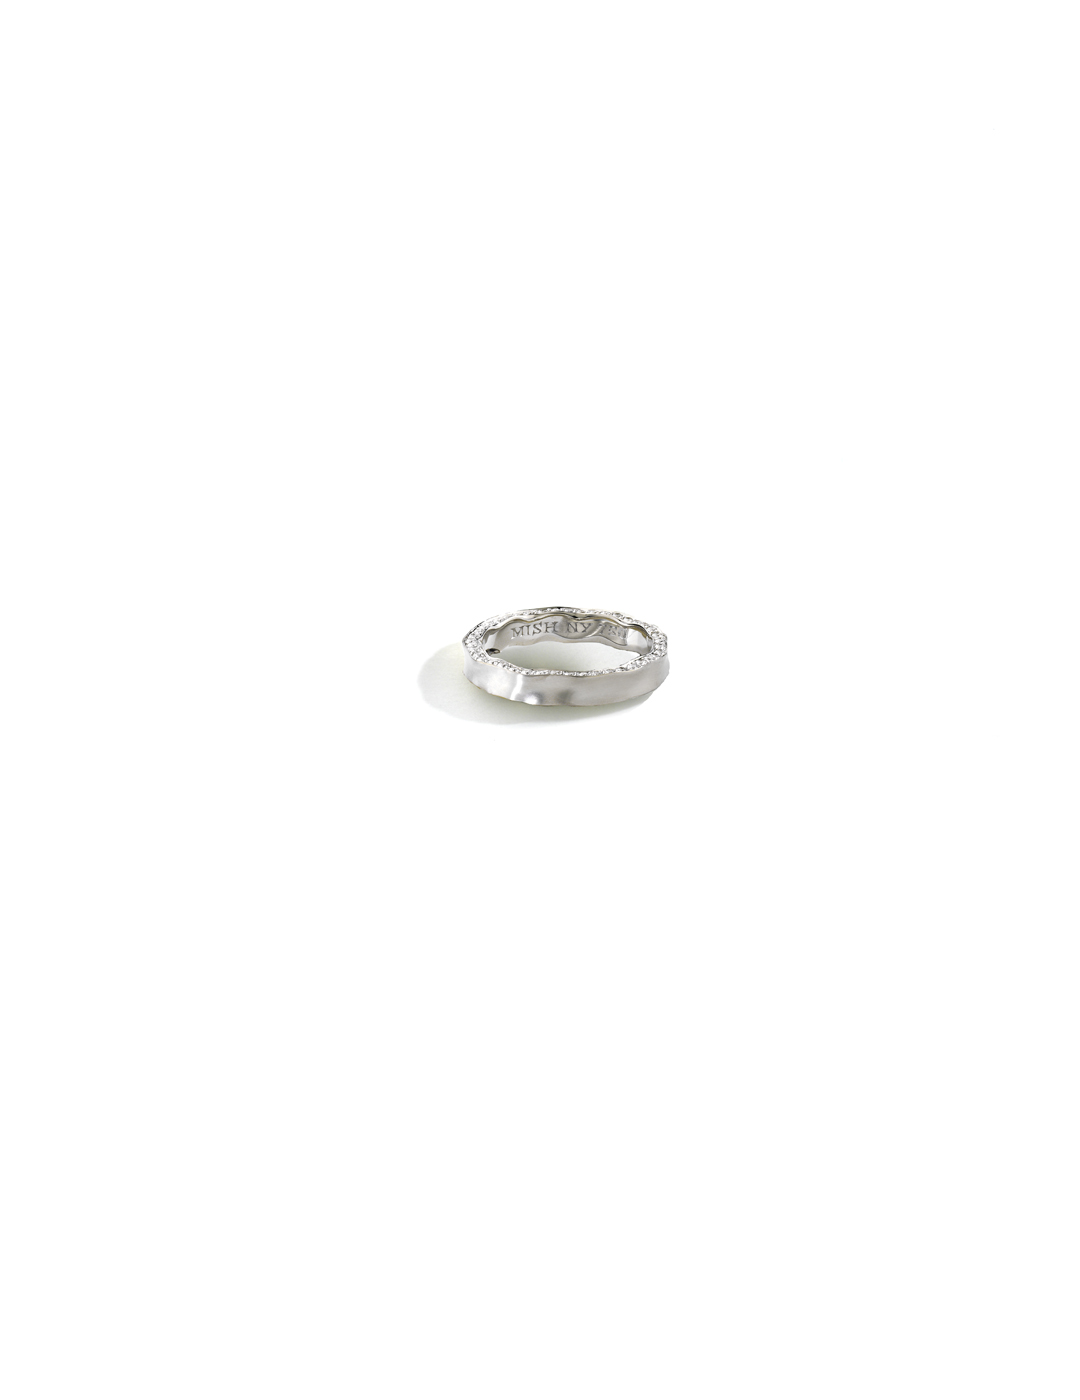 mish_products_rings_Bond Bow-WG-narow-1